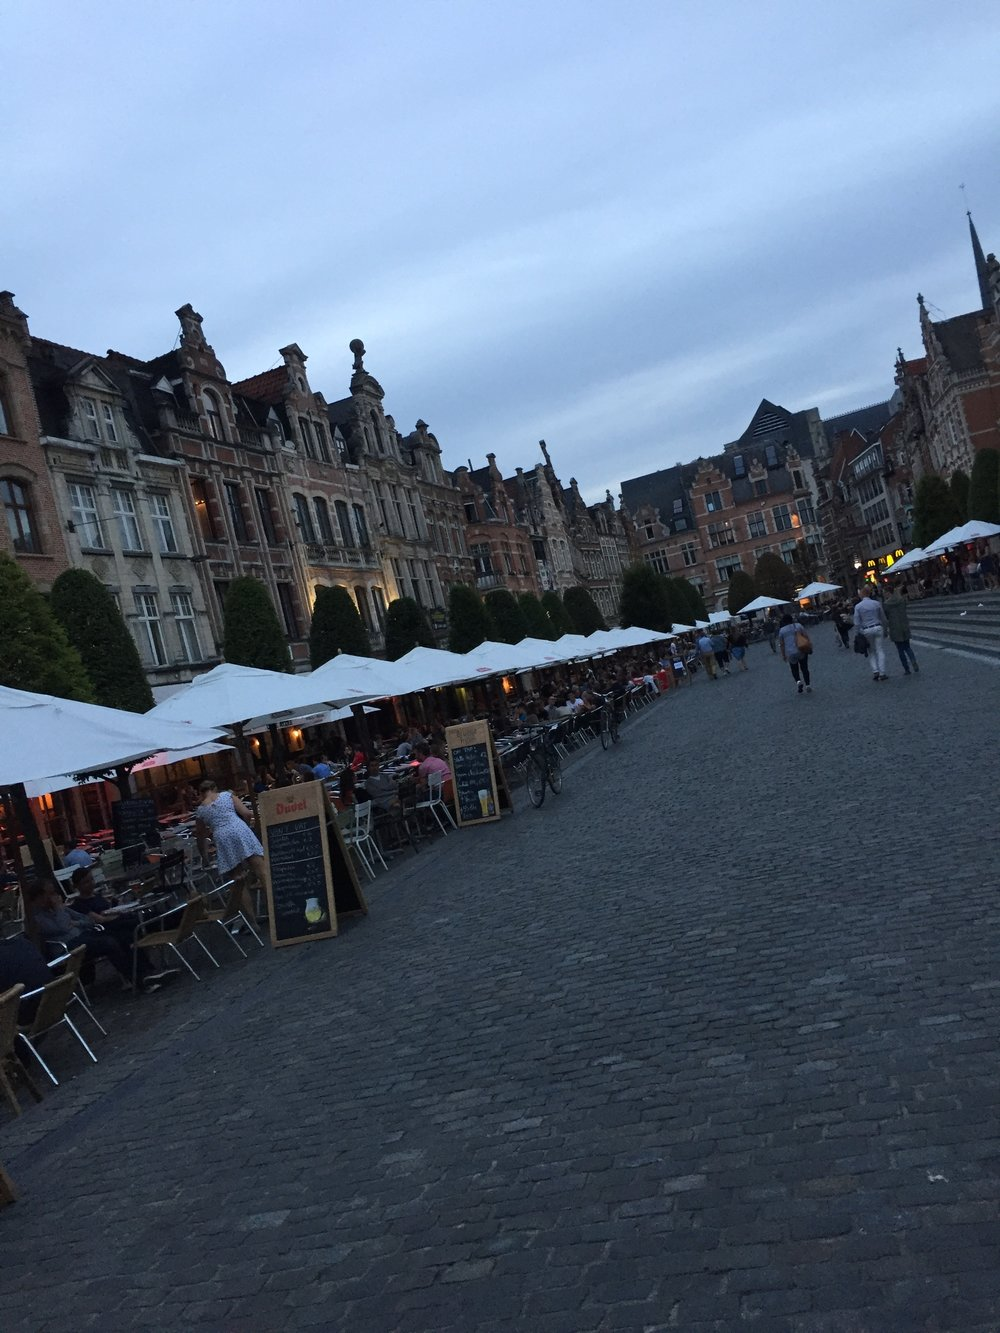 Leuven, Belgium is home to the world's longest outdoor bar seating area